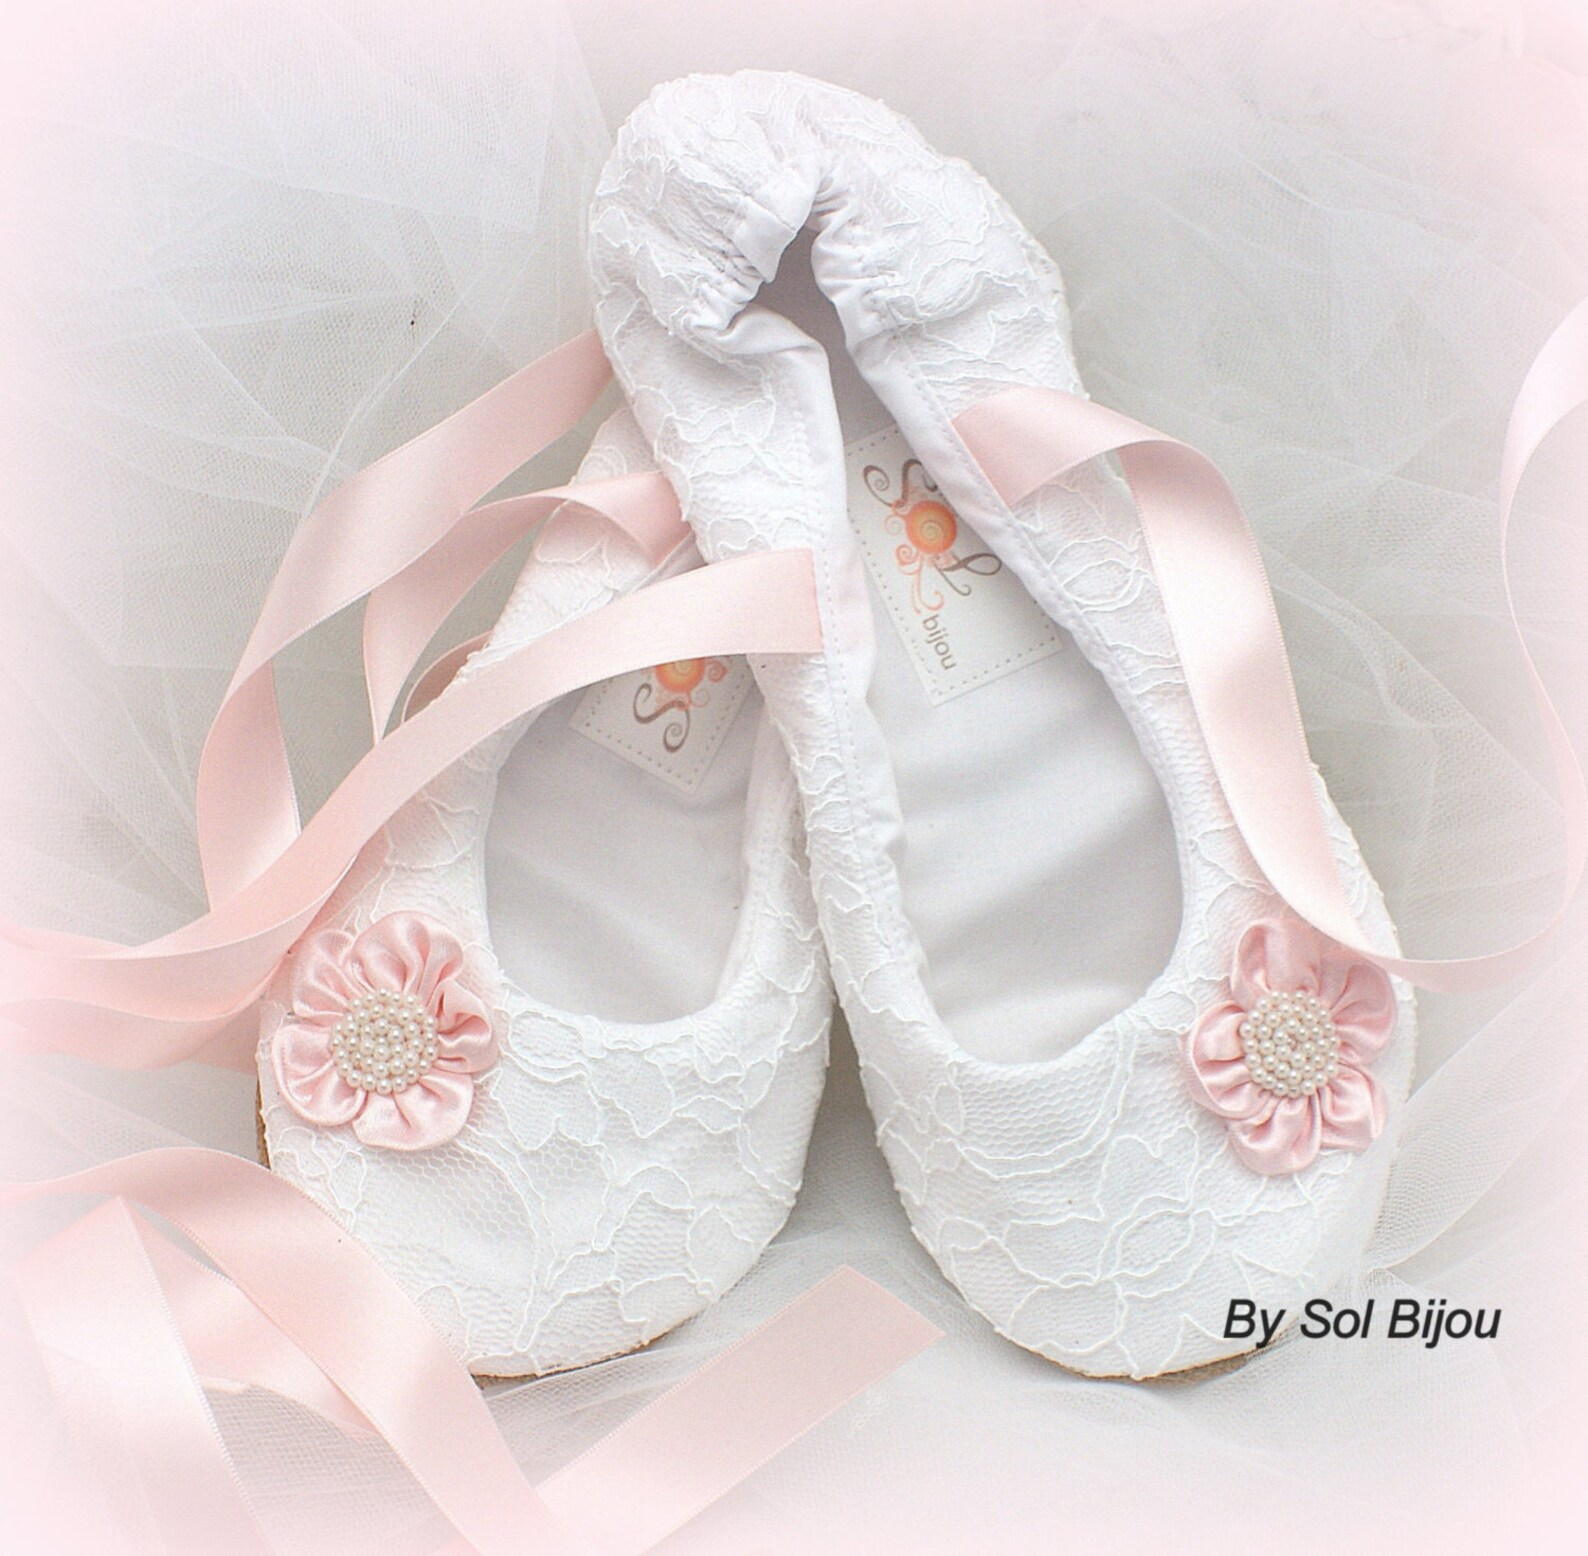 white and pink wedding ballet shoes, lace wedding shoes, ballet slippers, custom bridal shoes, wedding ballet flats